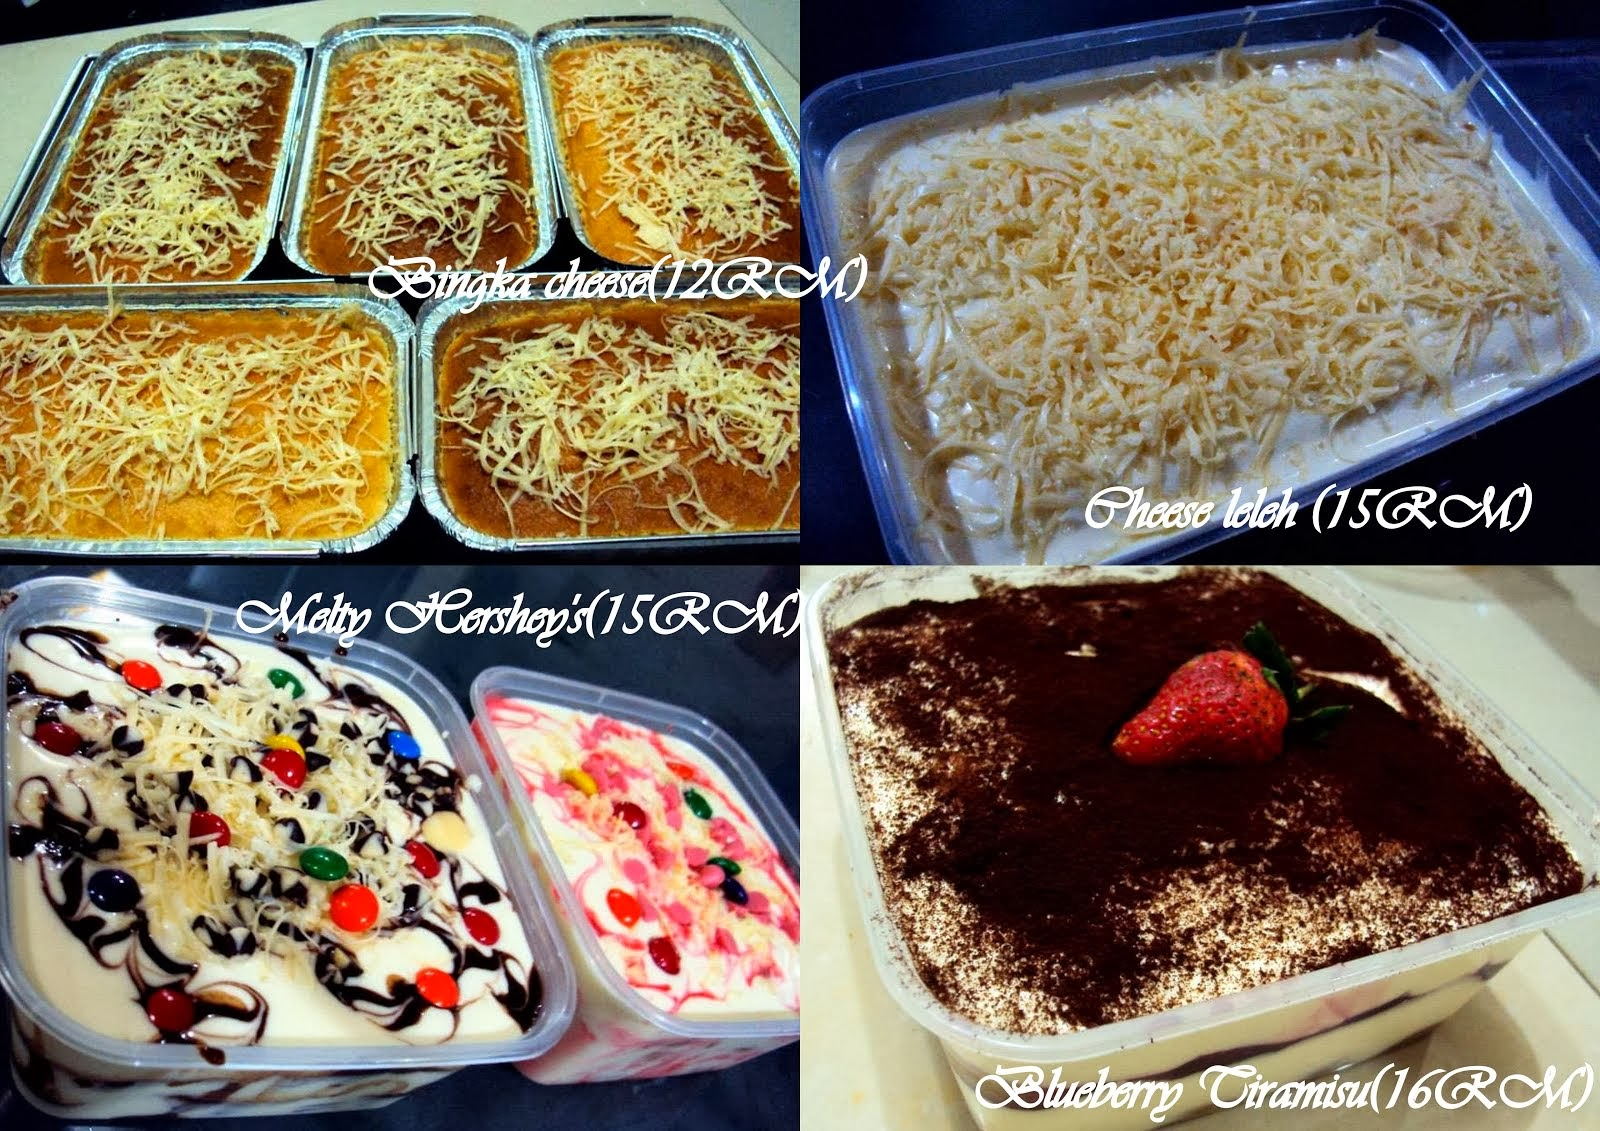 BINGKA CHEESE, CHEESE LELEH, MELTY HERSHEY'S, BLUEBERRY TIRAMISU